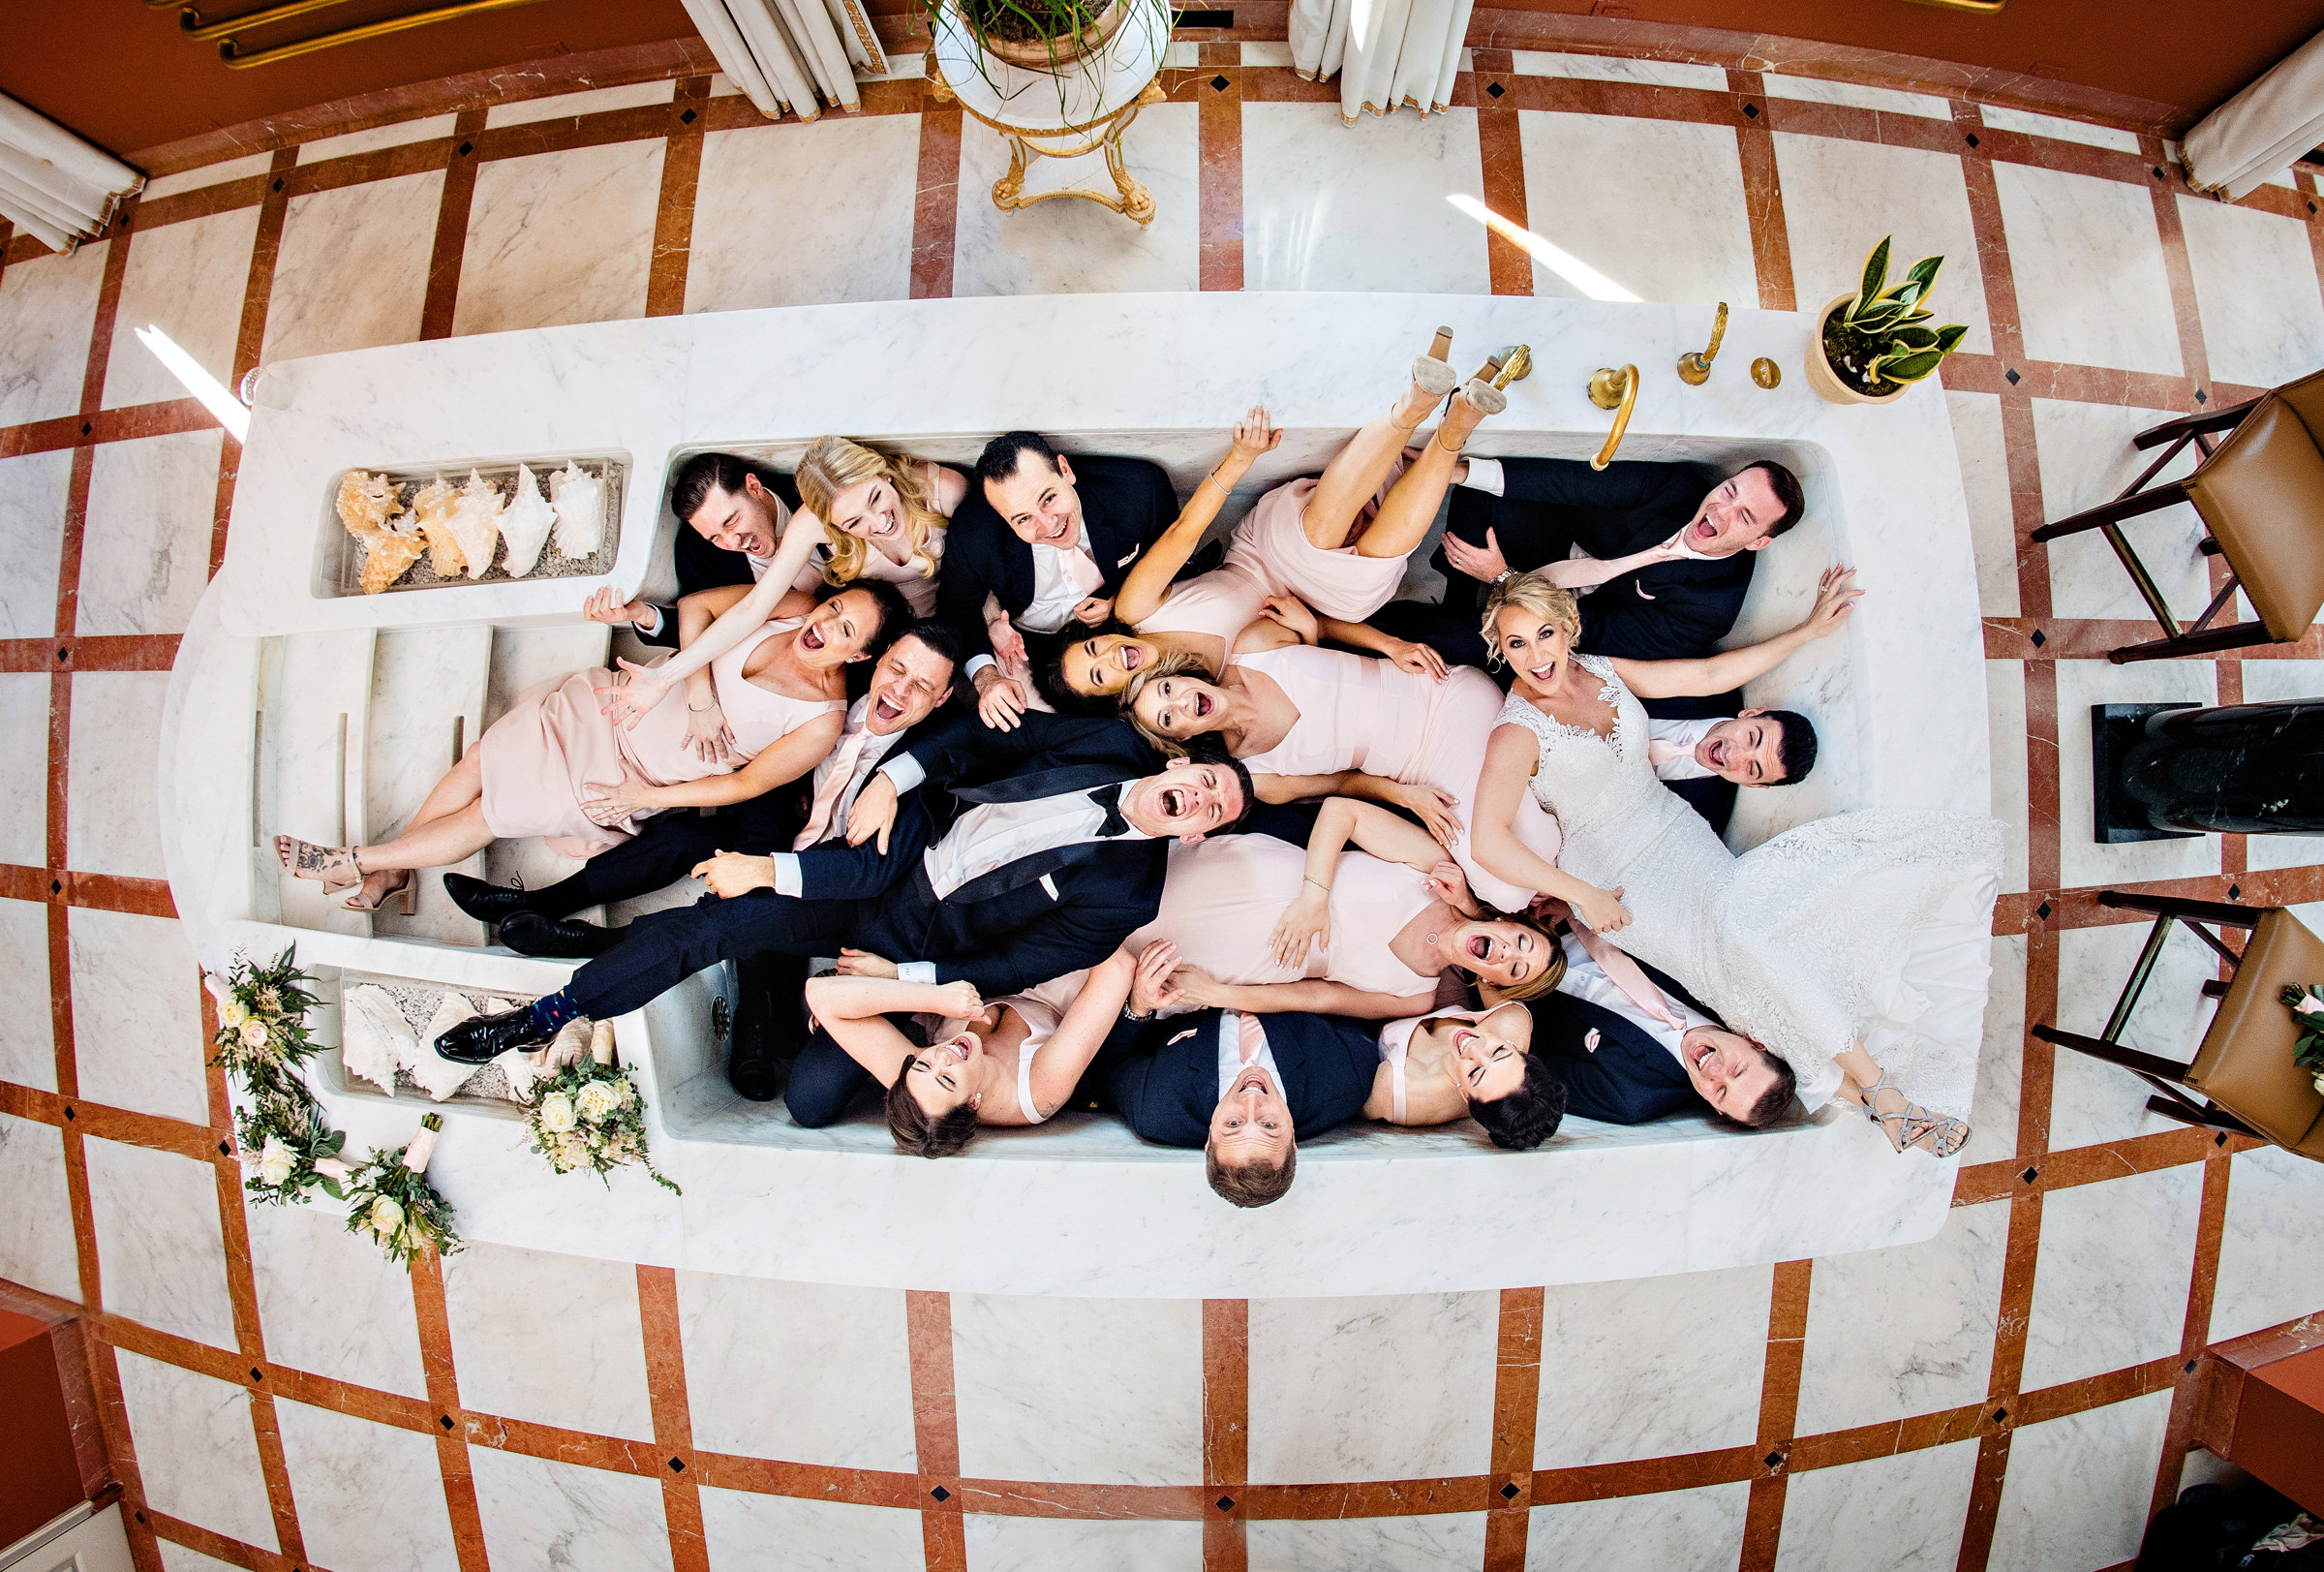 Aerial view of bridal party in luxury bathtub - photo by Jeff Tisman Photography